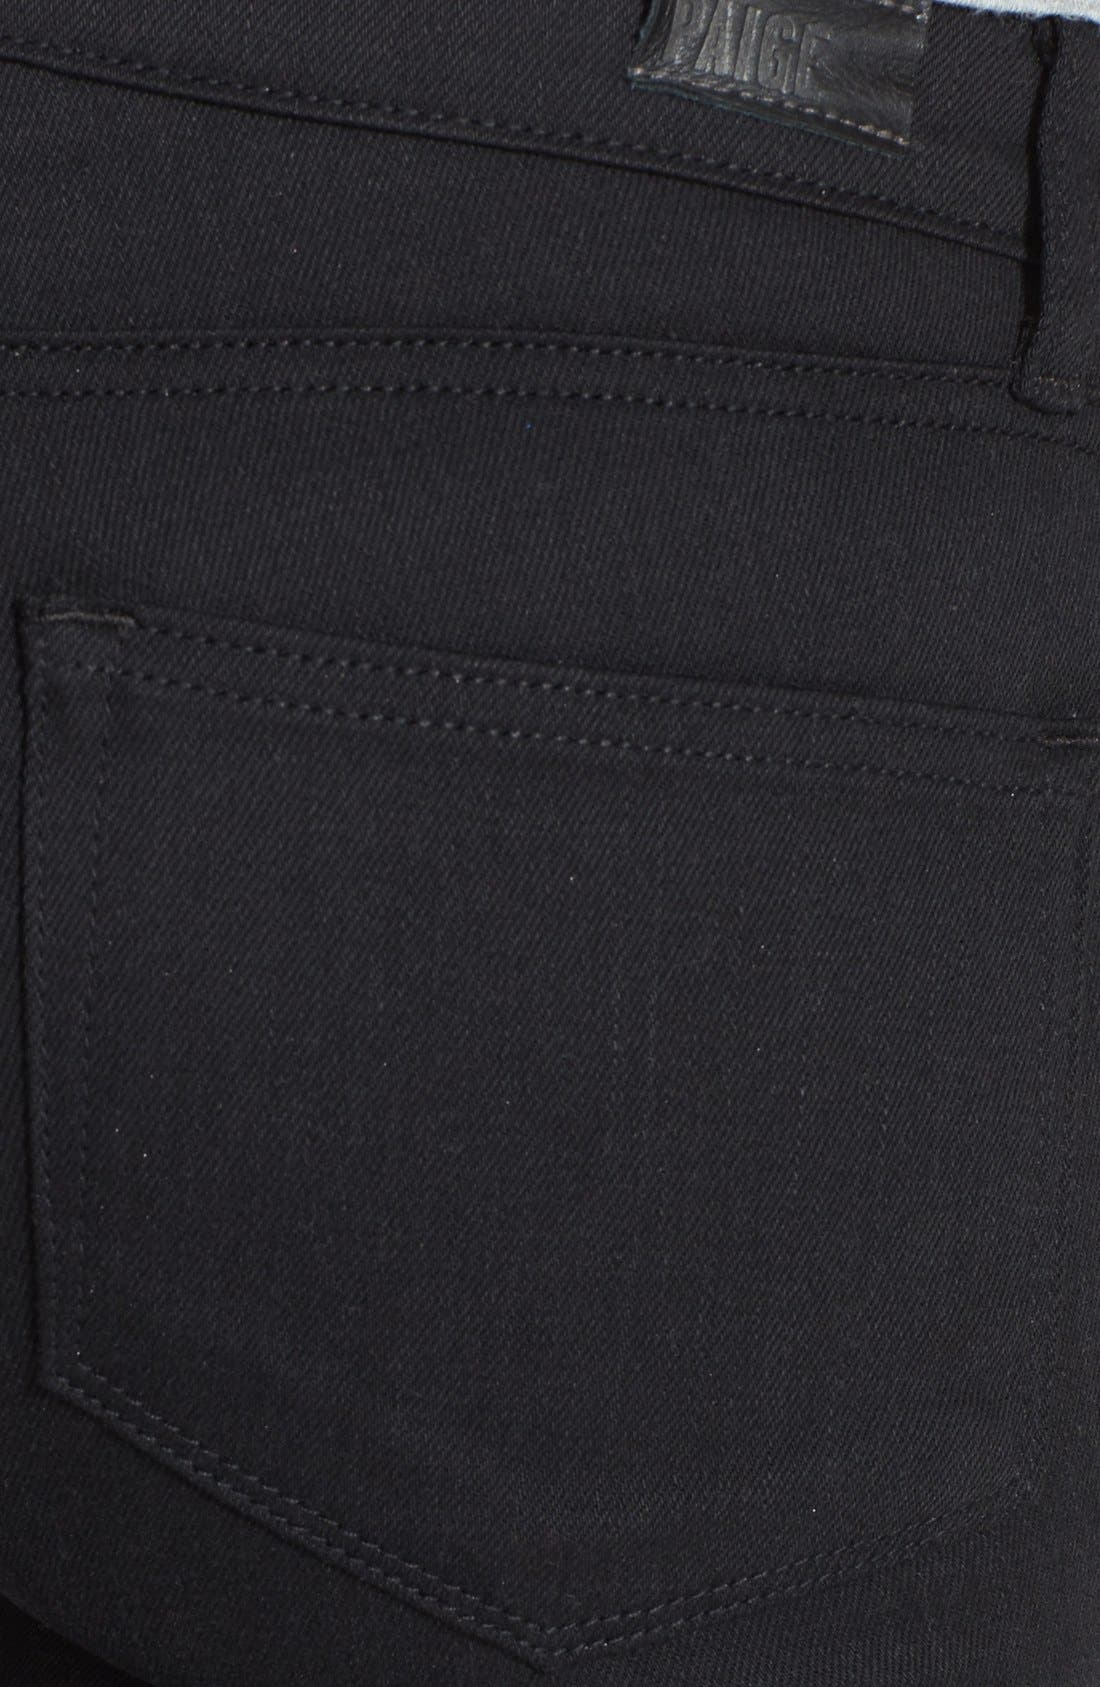 Alternate Image 3  - Paige Denim 'Indio' Zip Detail Ultra Skinny Jeans (Steel Grey)